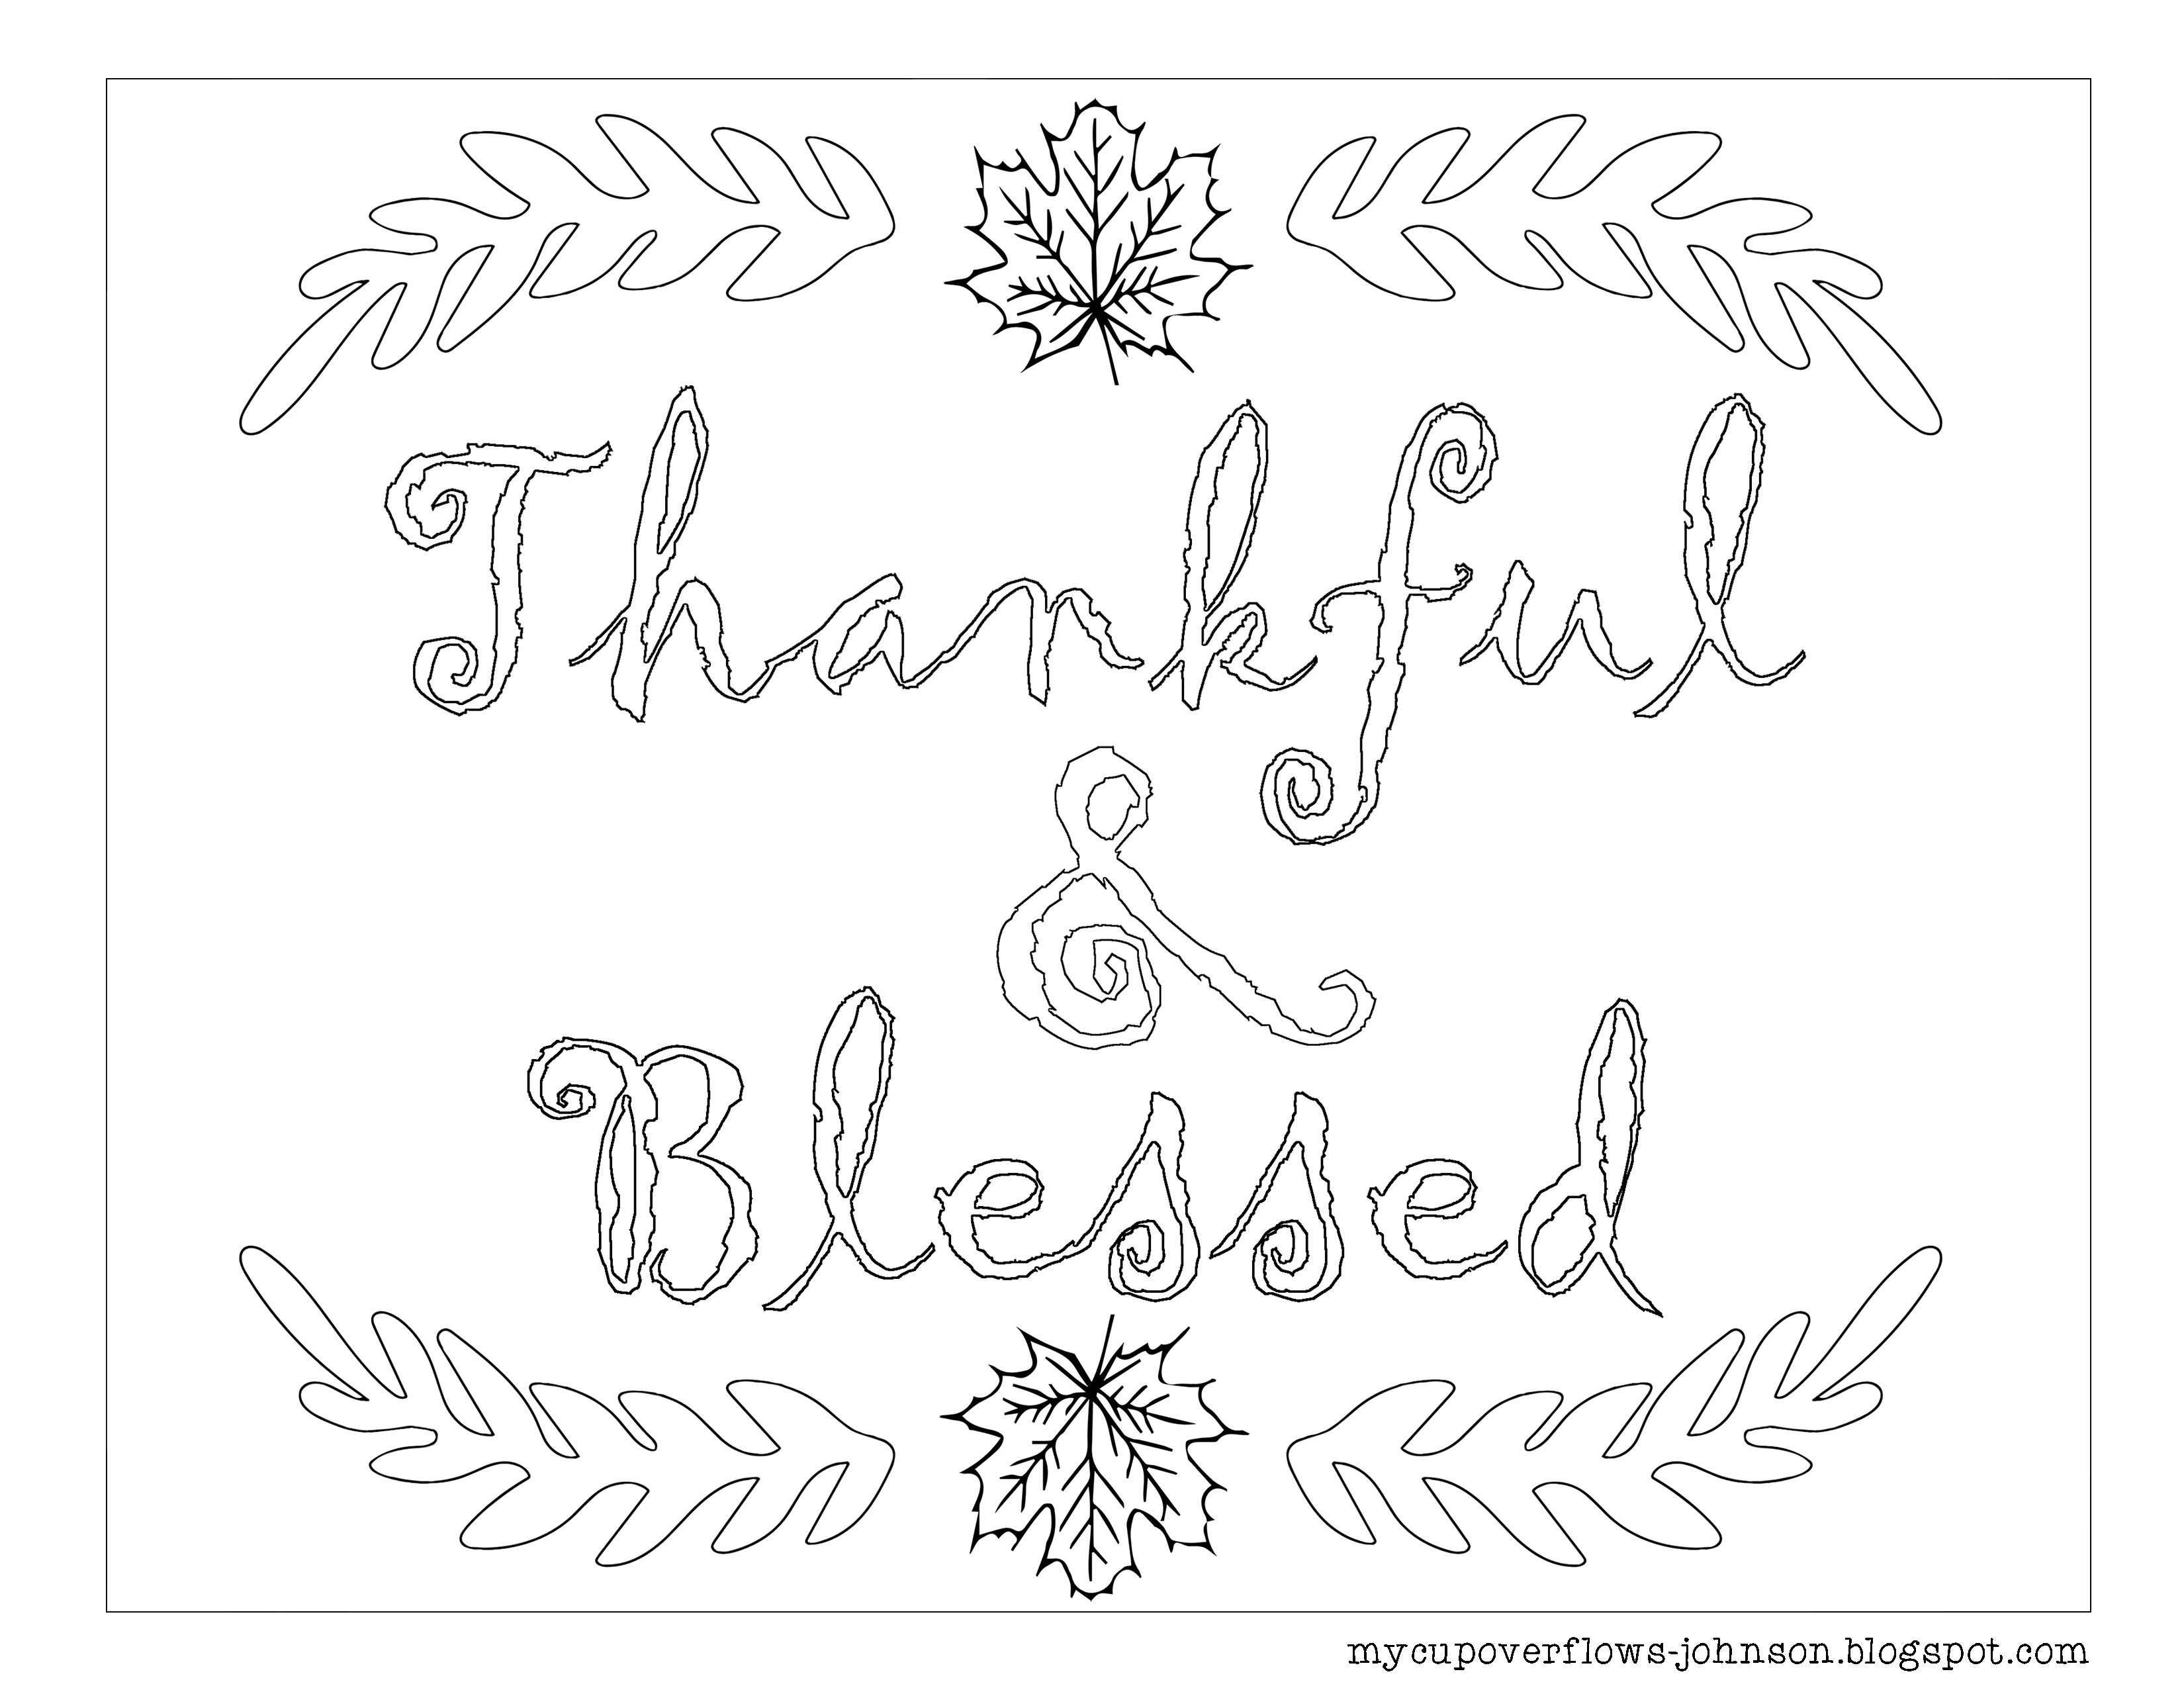 Cute Thanksgiving Coloring Sheet With Grateful Thankful Blessed Quote Coloring Turkey Coloring Pages Thanksgiving Coloring Pages Thanksgiving Coloring Sheets